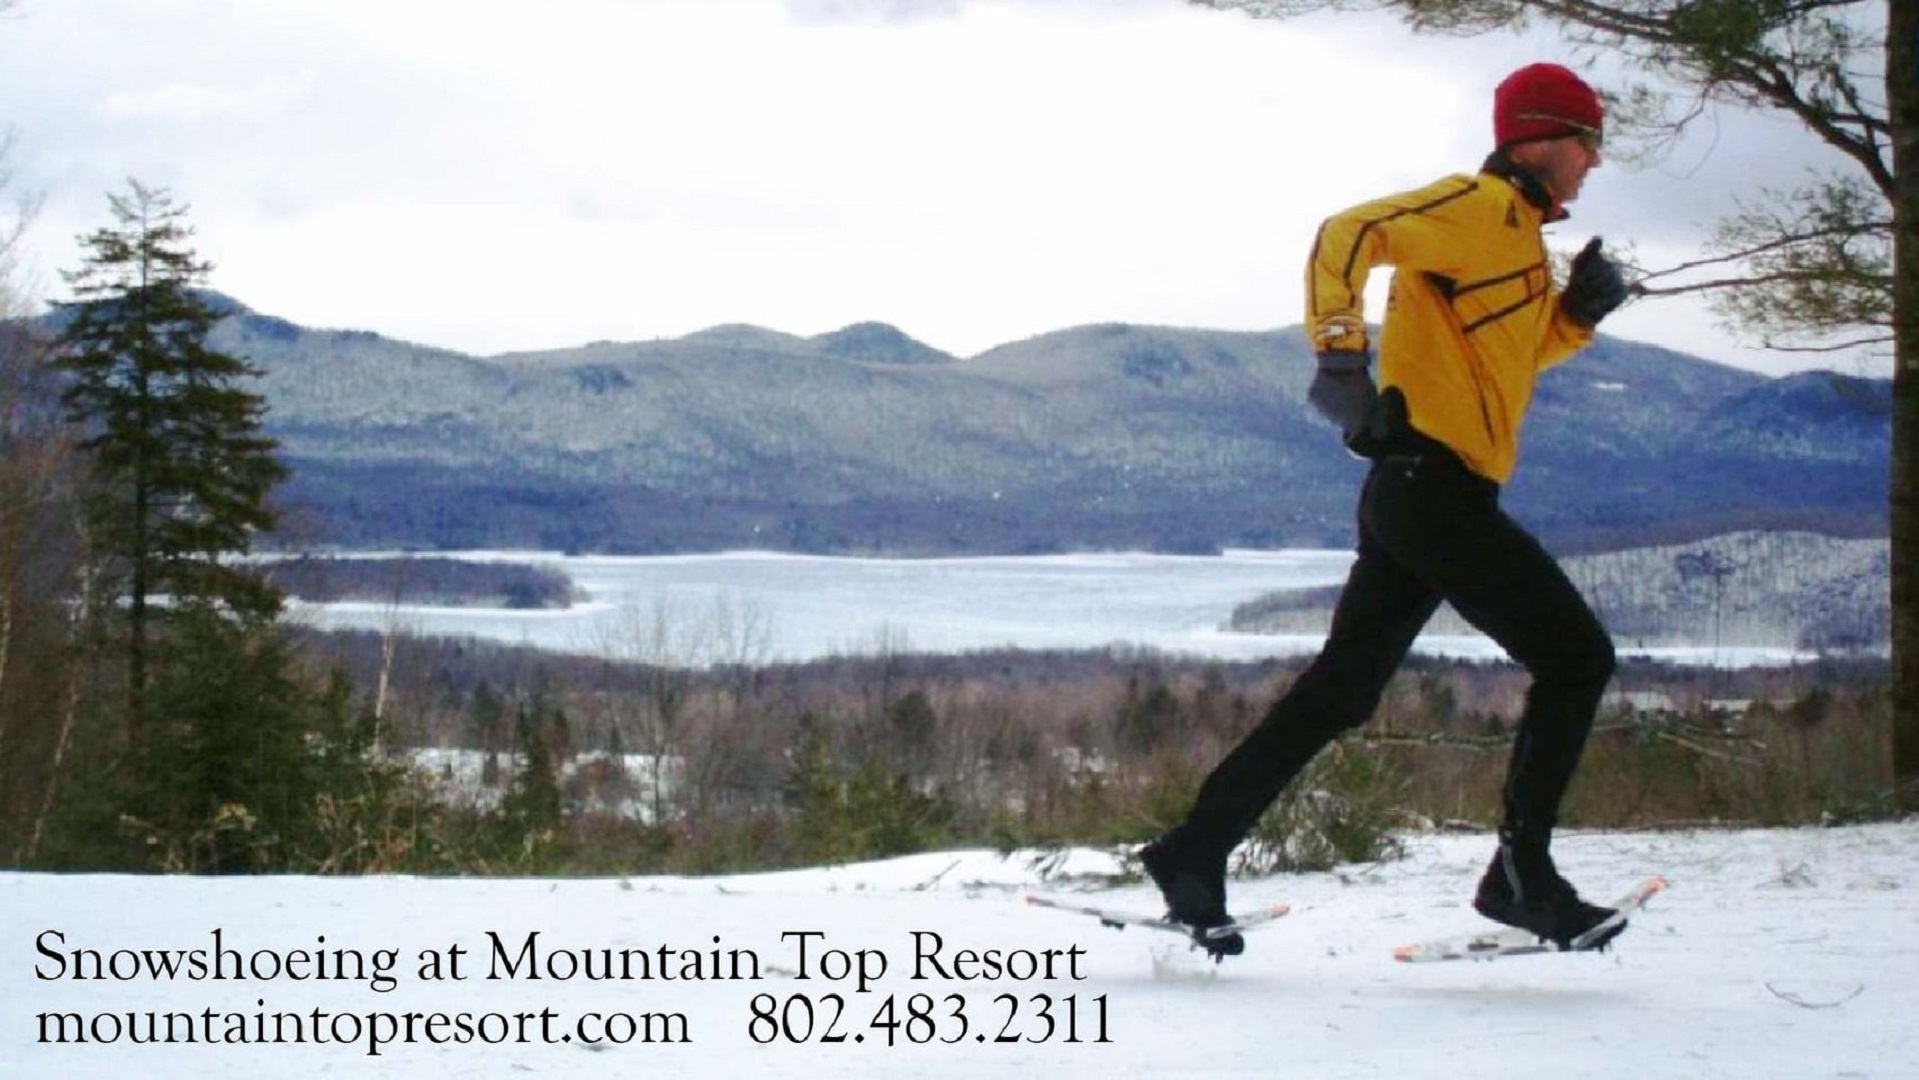 A man is cross country skiing in the snow at The Mountain Top Inn & Resort.